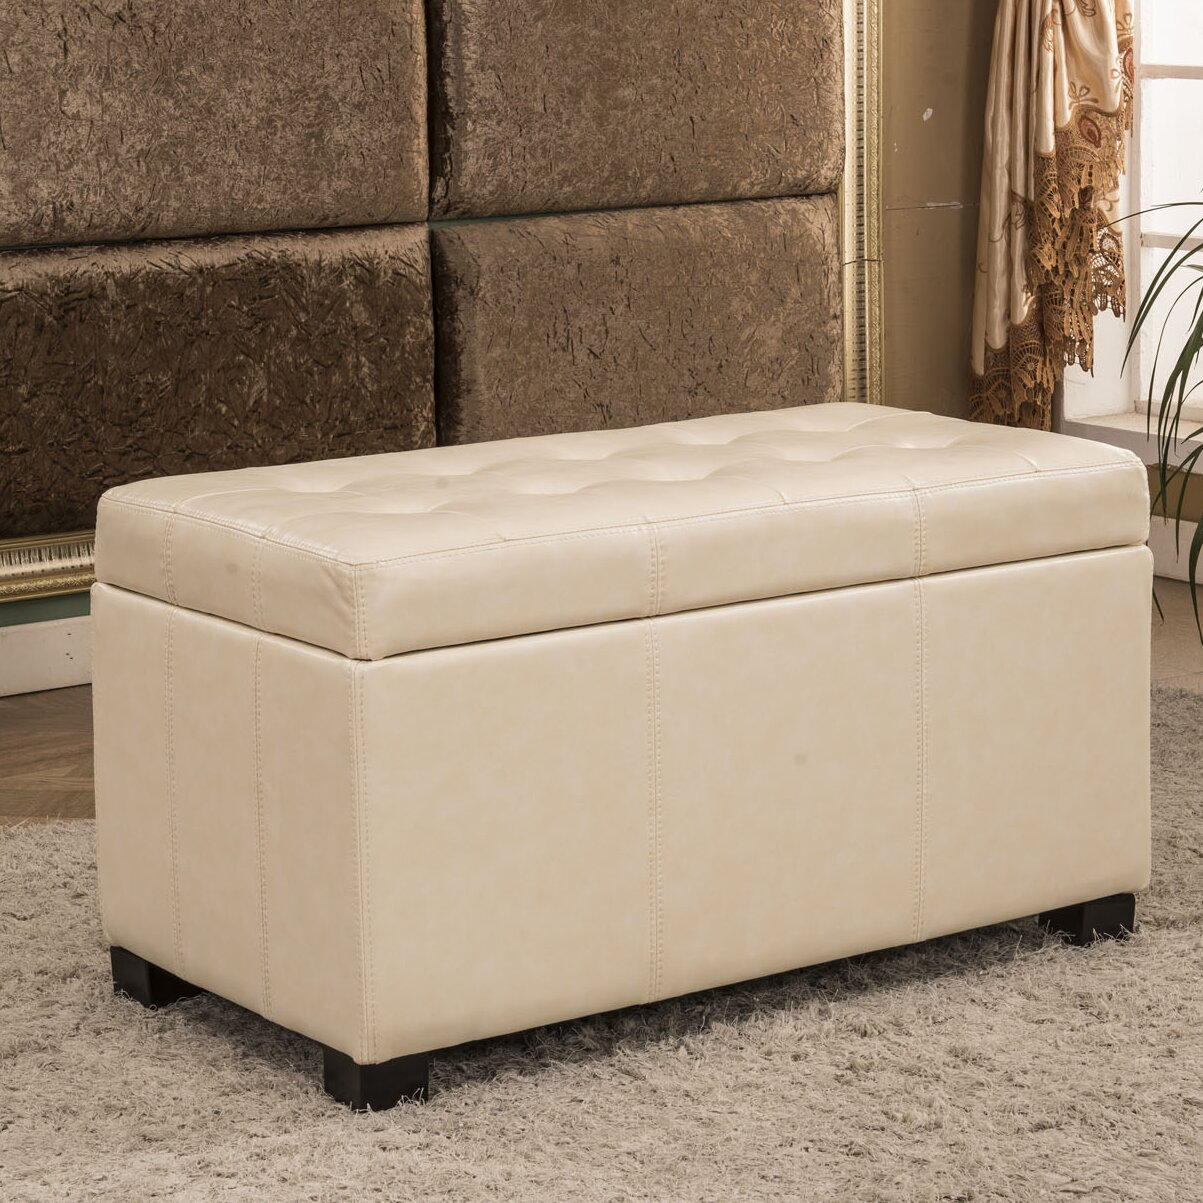 #8C623F  Collection Upholstered Storage Entryway Bench & Reviews Wayfair with 1203x1203 px of Brand New Upholstered Storage Benches 12031203 pic @ avoidforclosure.info